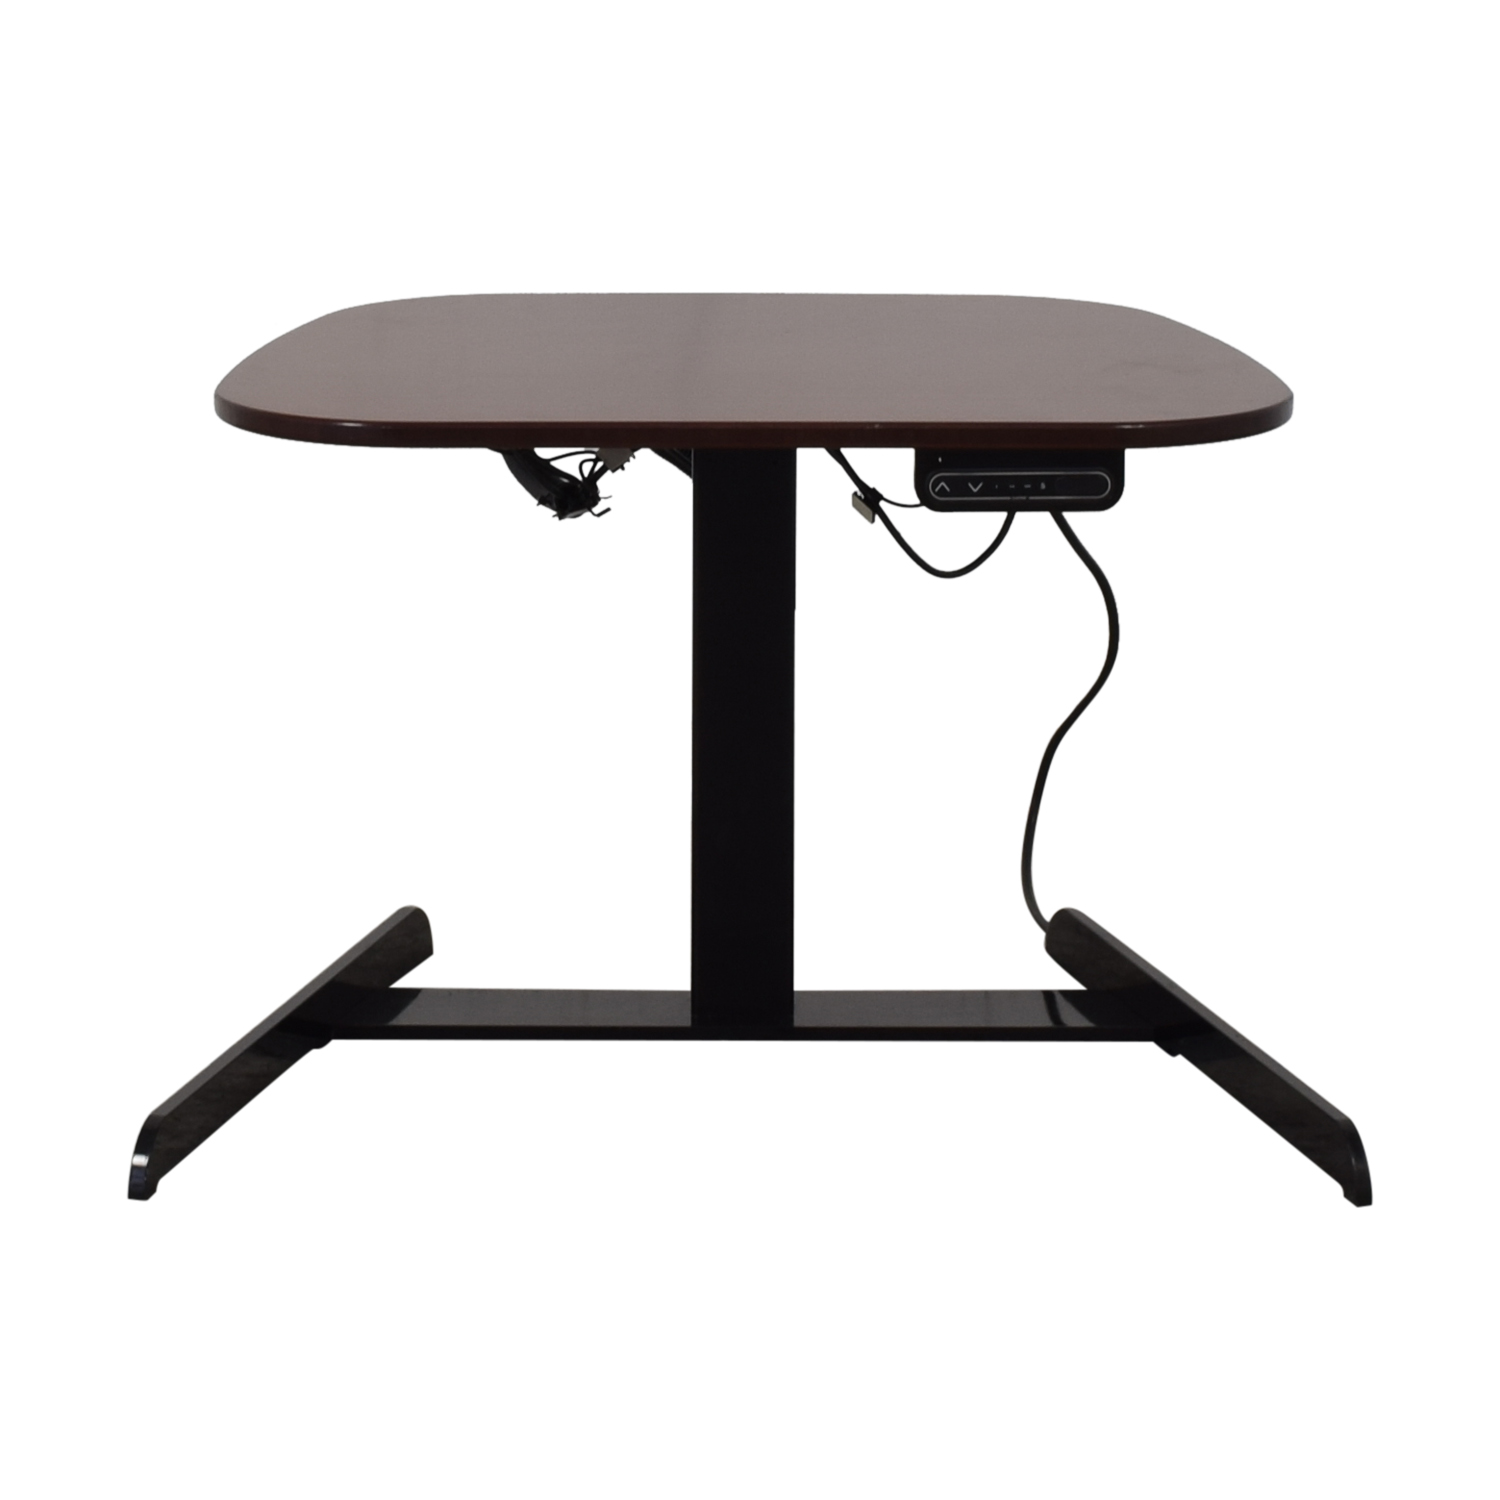 Next Desk Xdesk Solo Plus Standing Desk sale